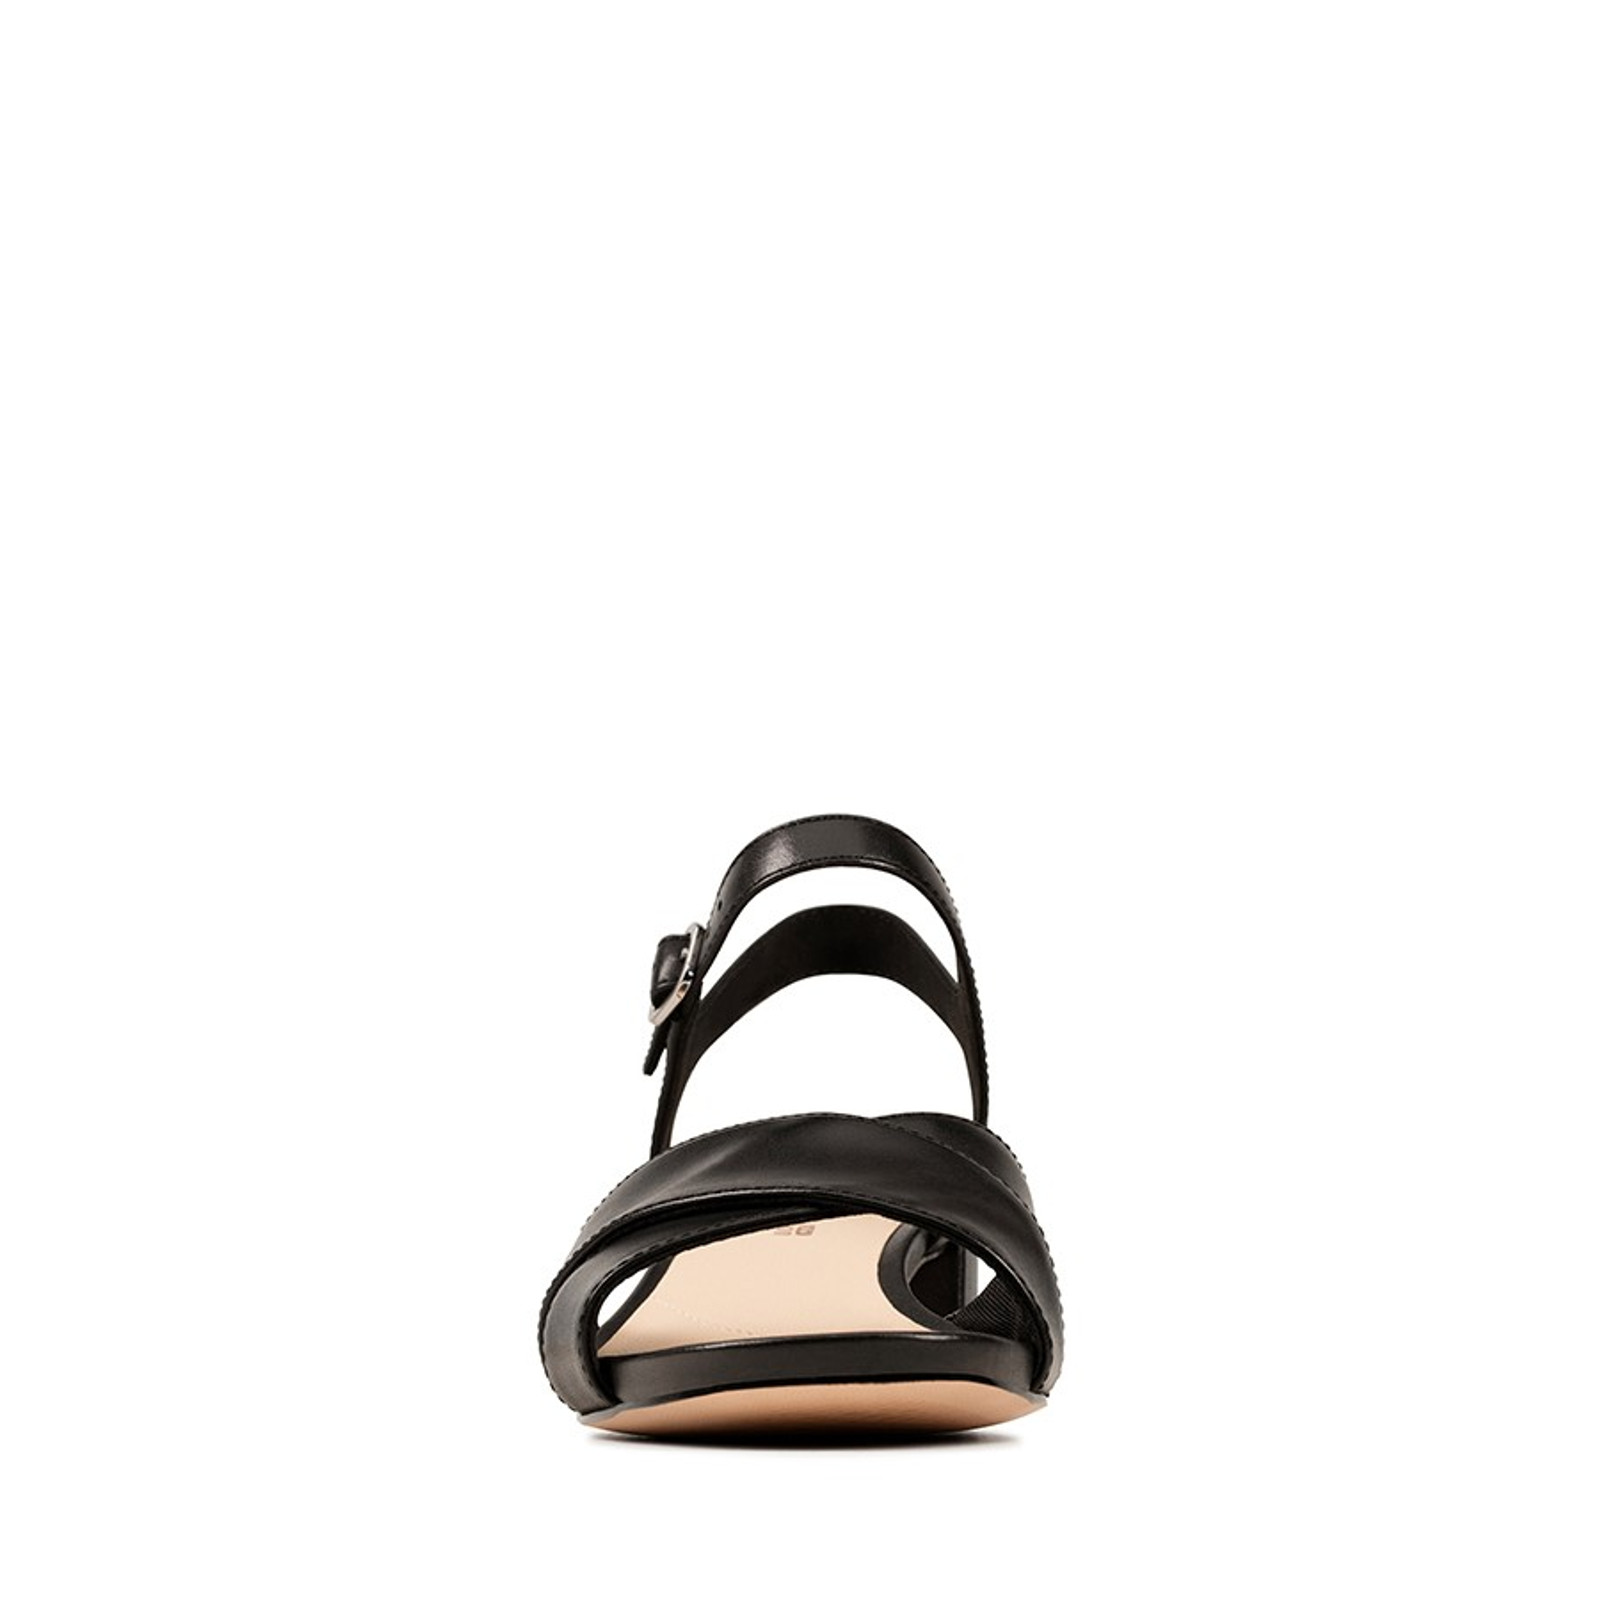 Clarks Womens SHEER35 STRAP Black Leather